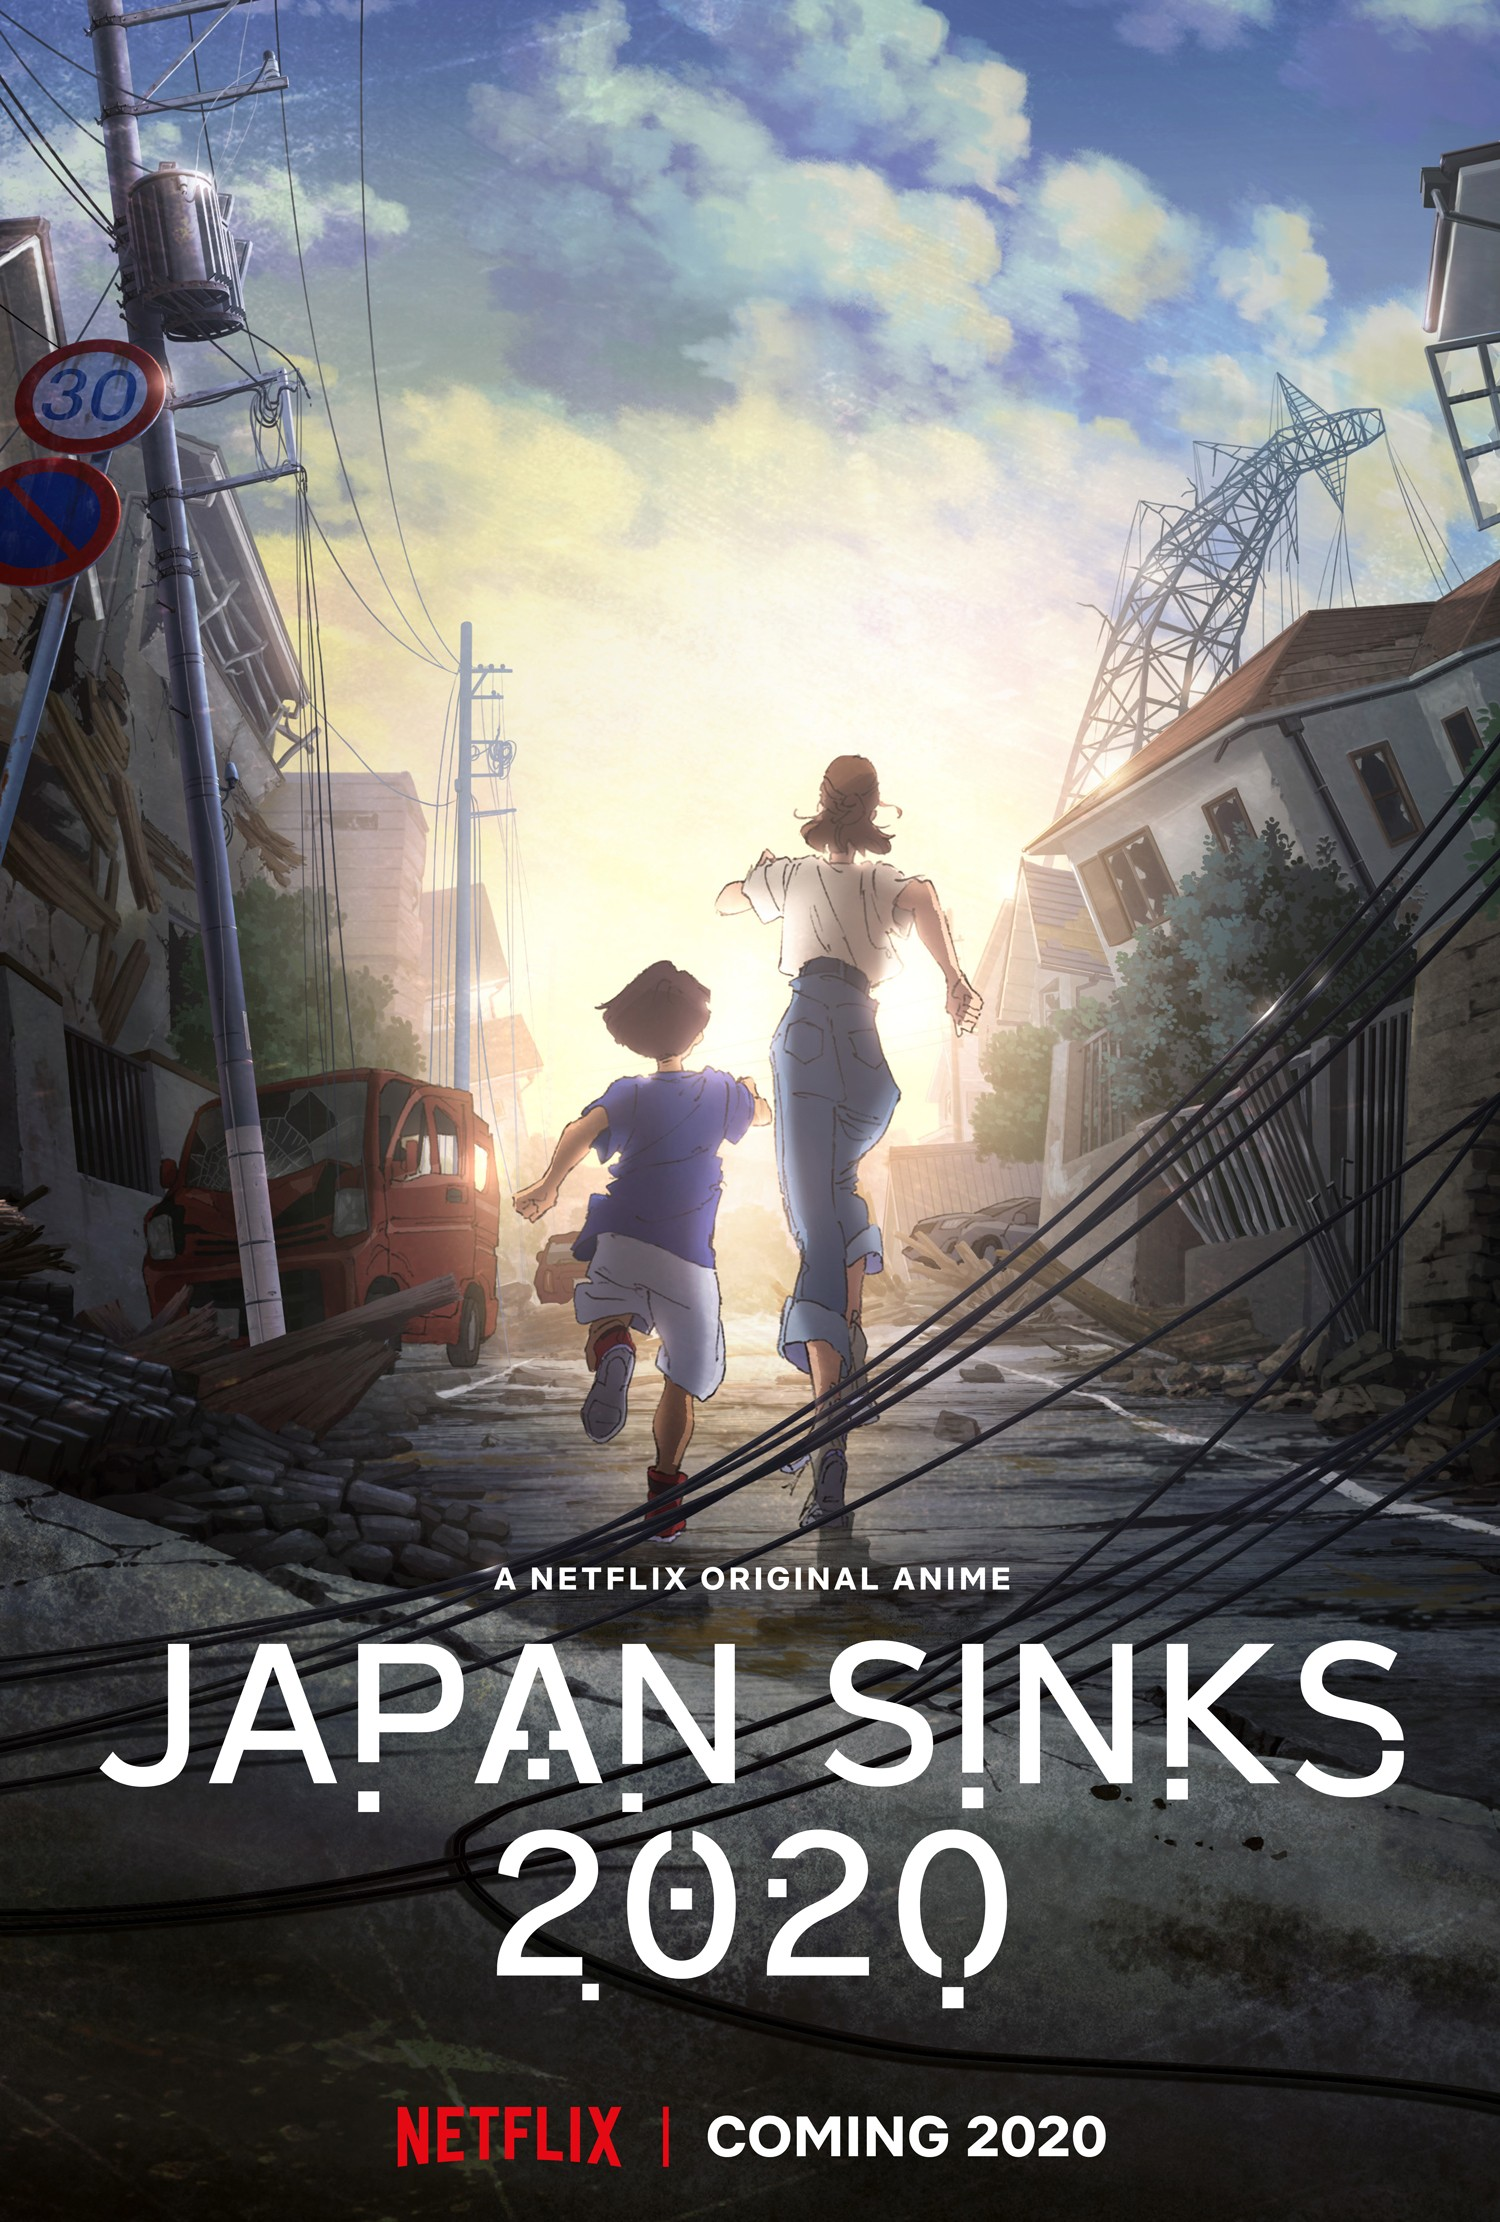 Featured image for *Guest Post* 2020 the Anime: Japan Sinks-2020